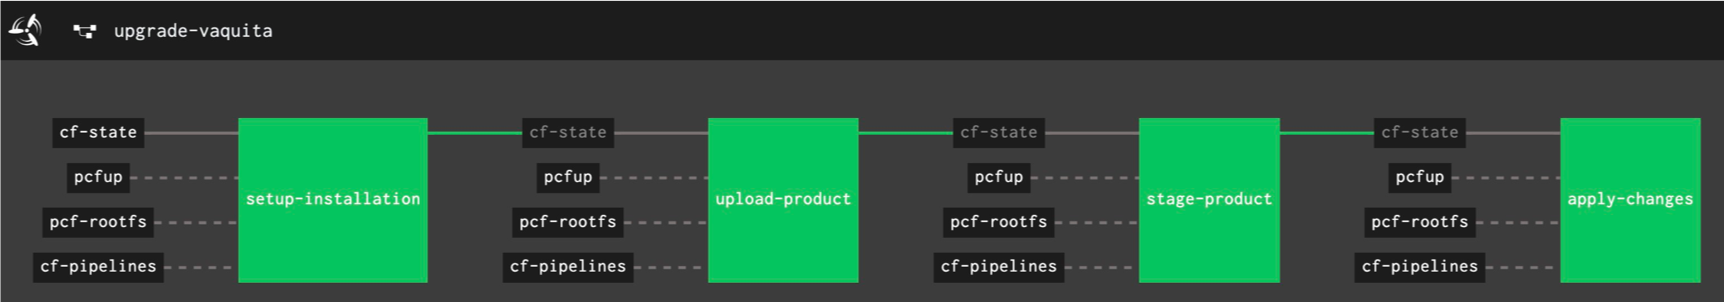 Example pipeline that upgrades a single Cloud Foundry environment with all installed products